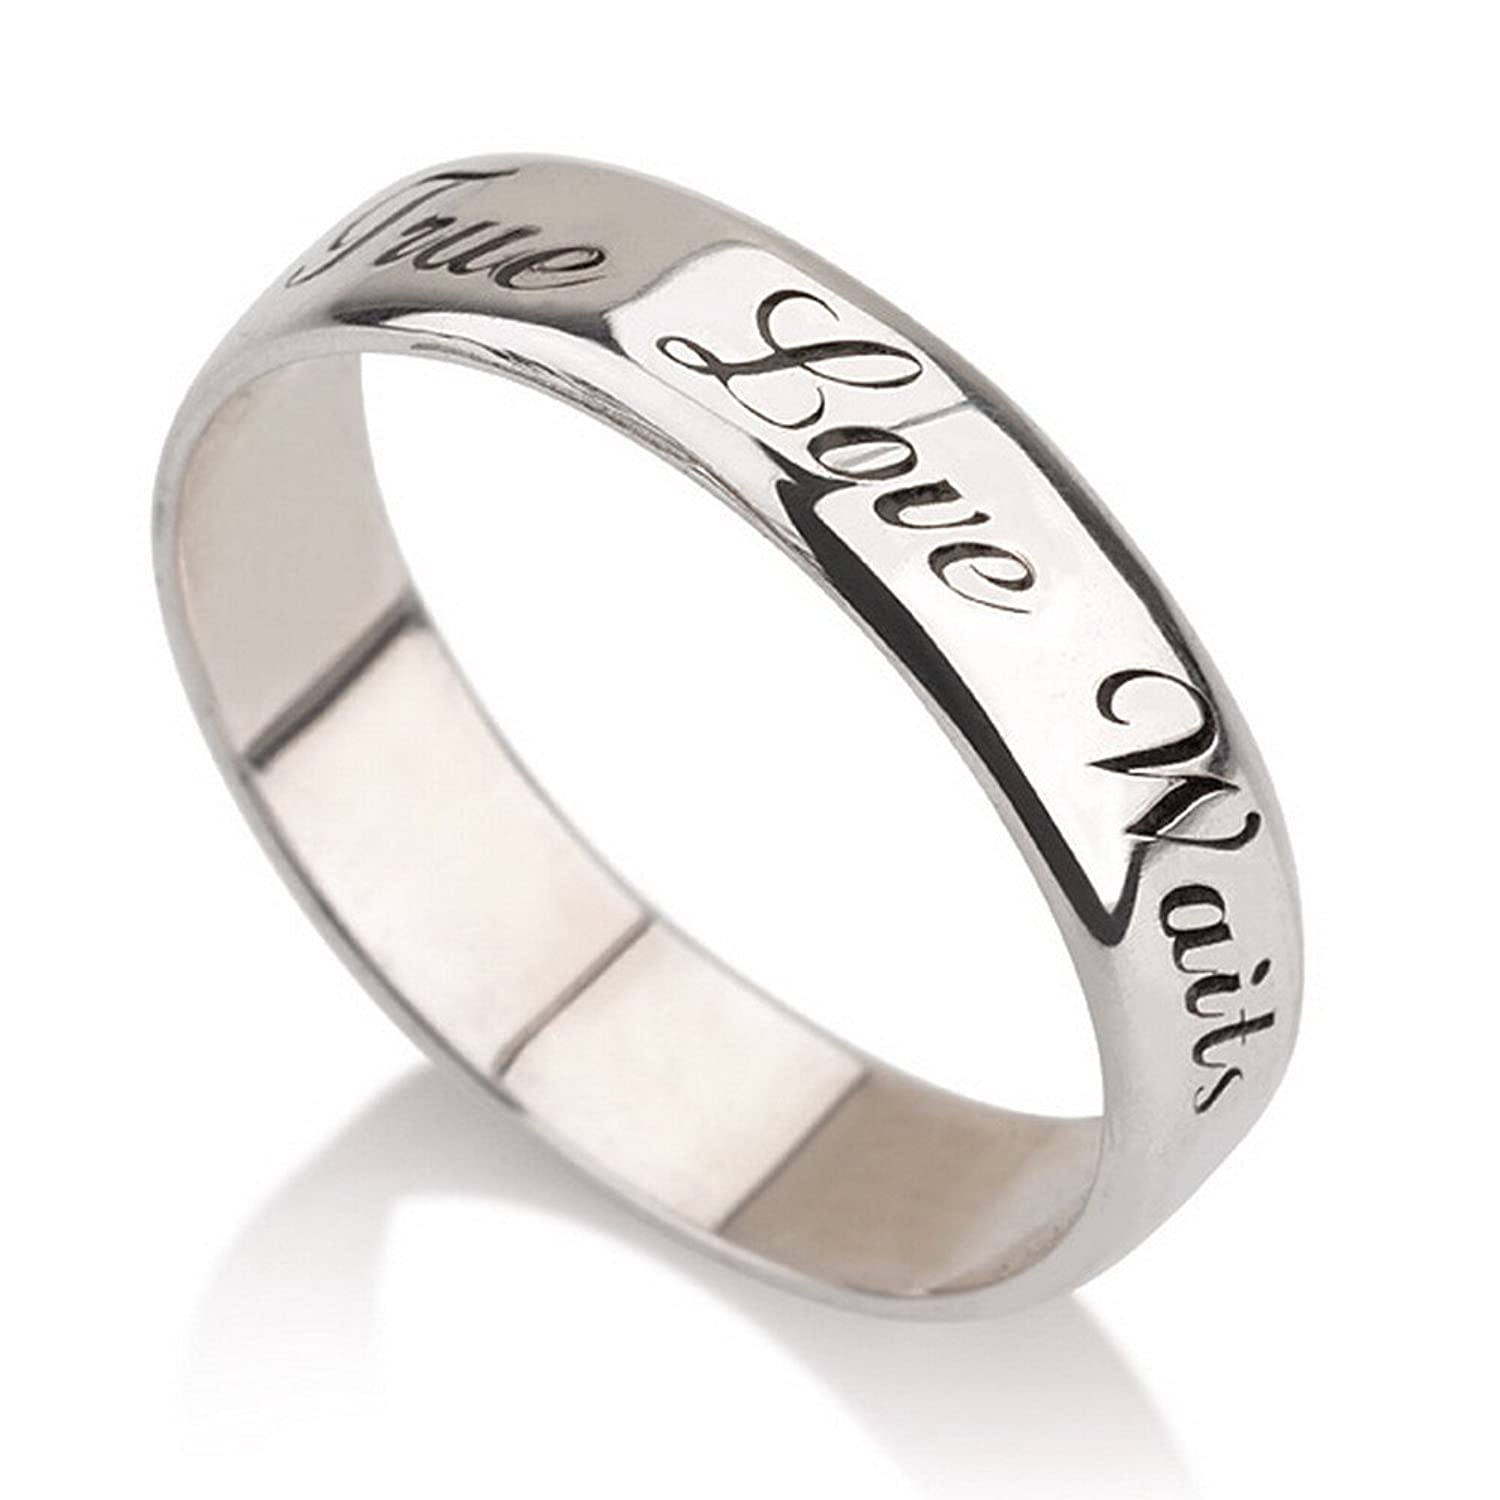 two com celtic bands band tone engraved wedding walmart sterling silver personalized ip